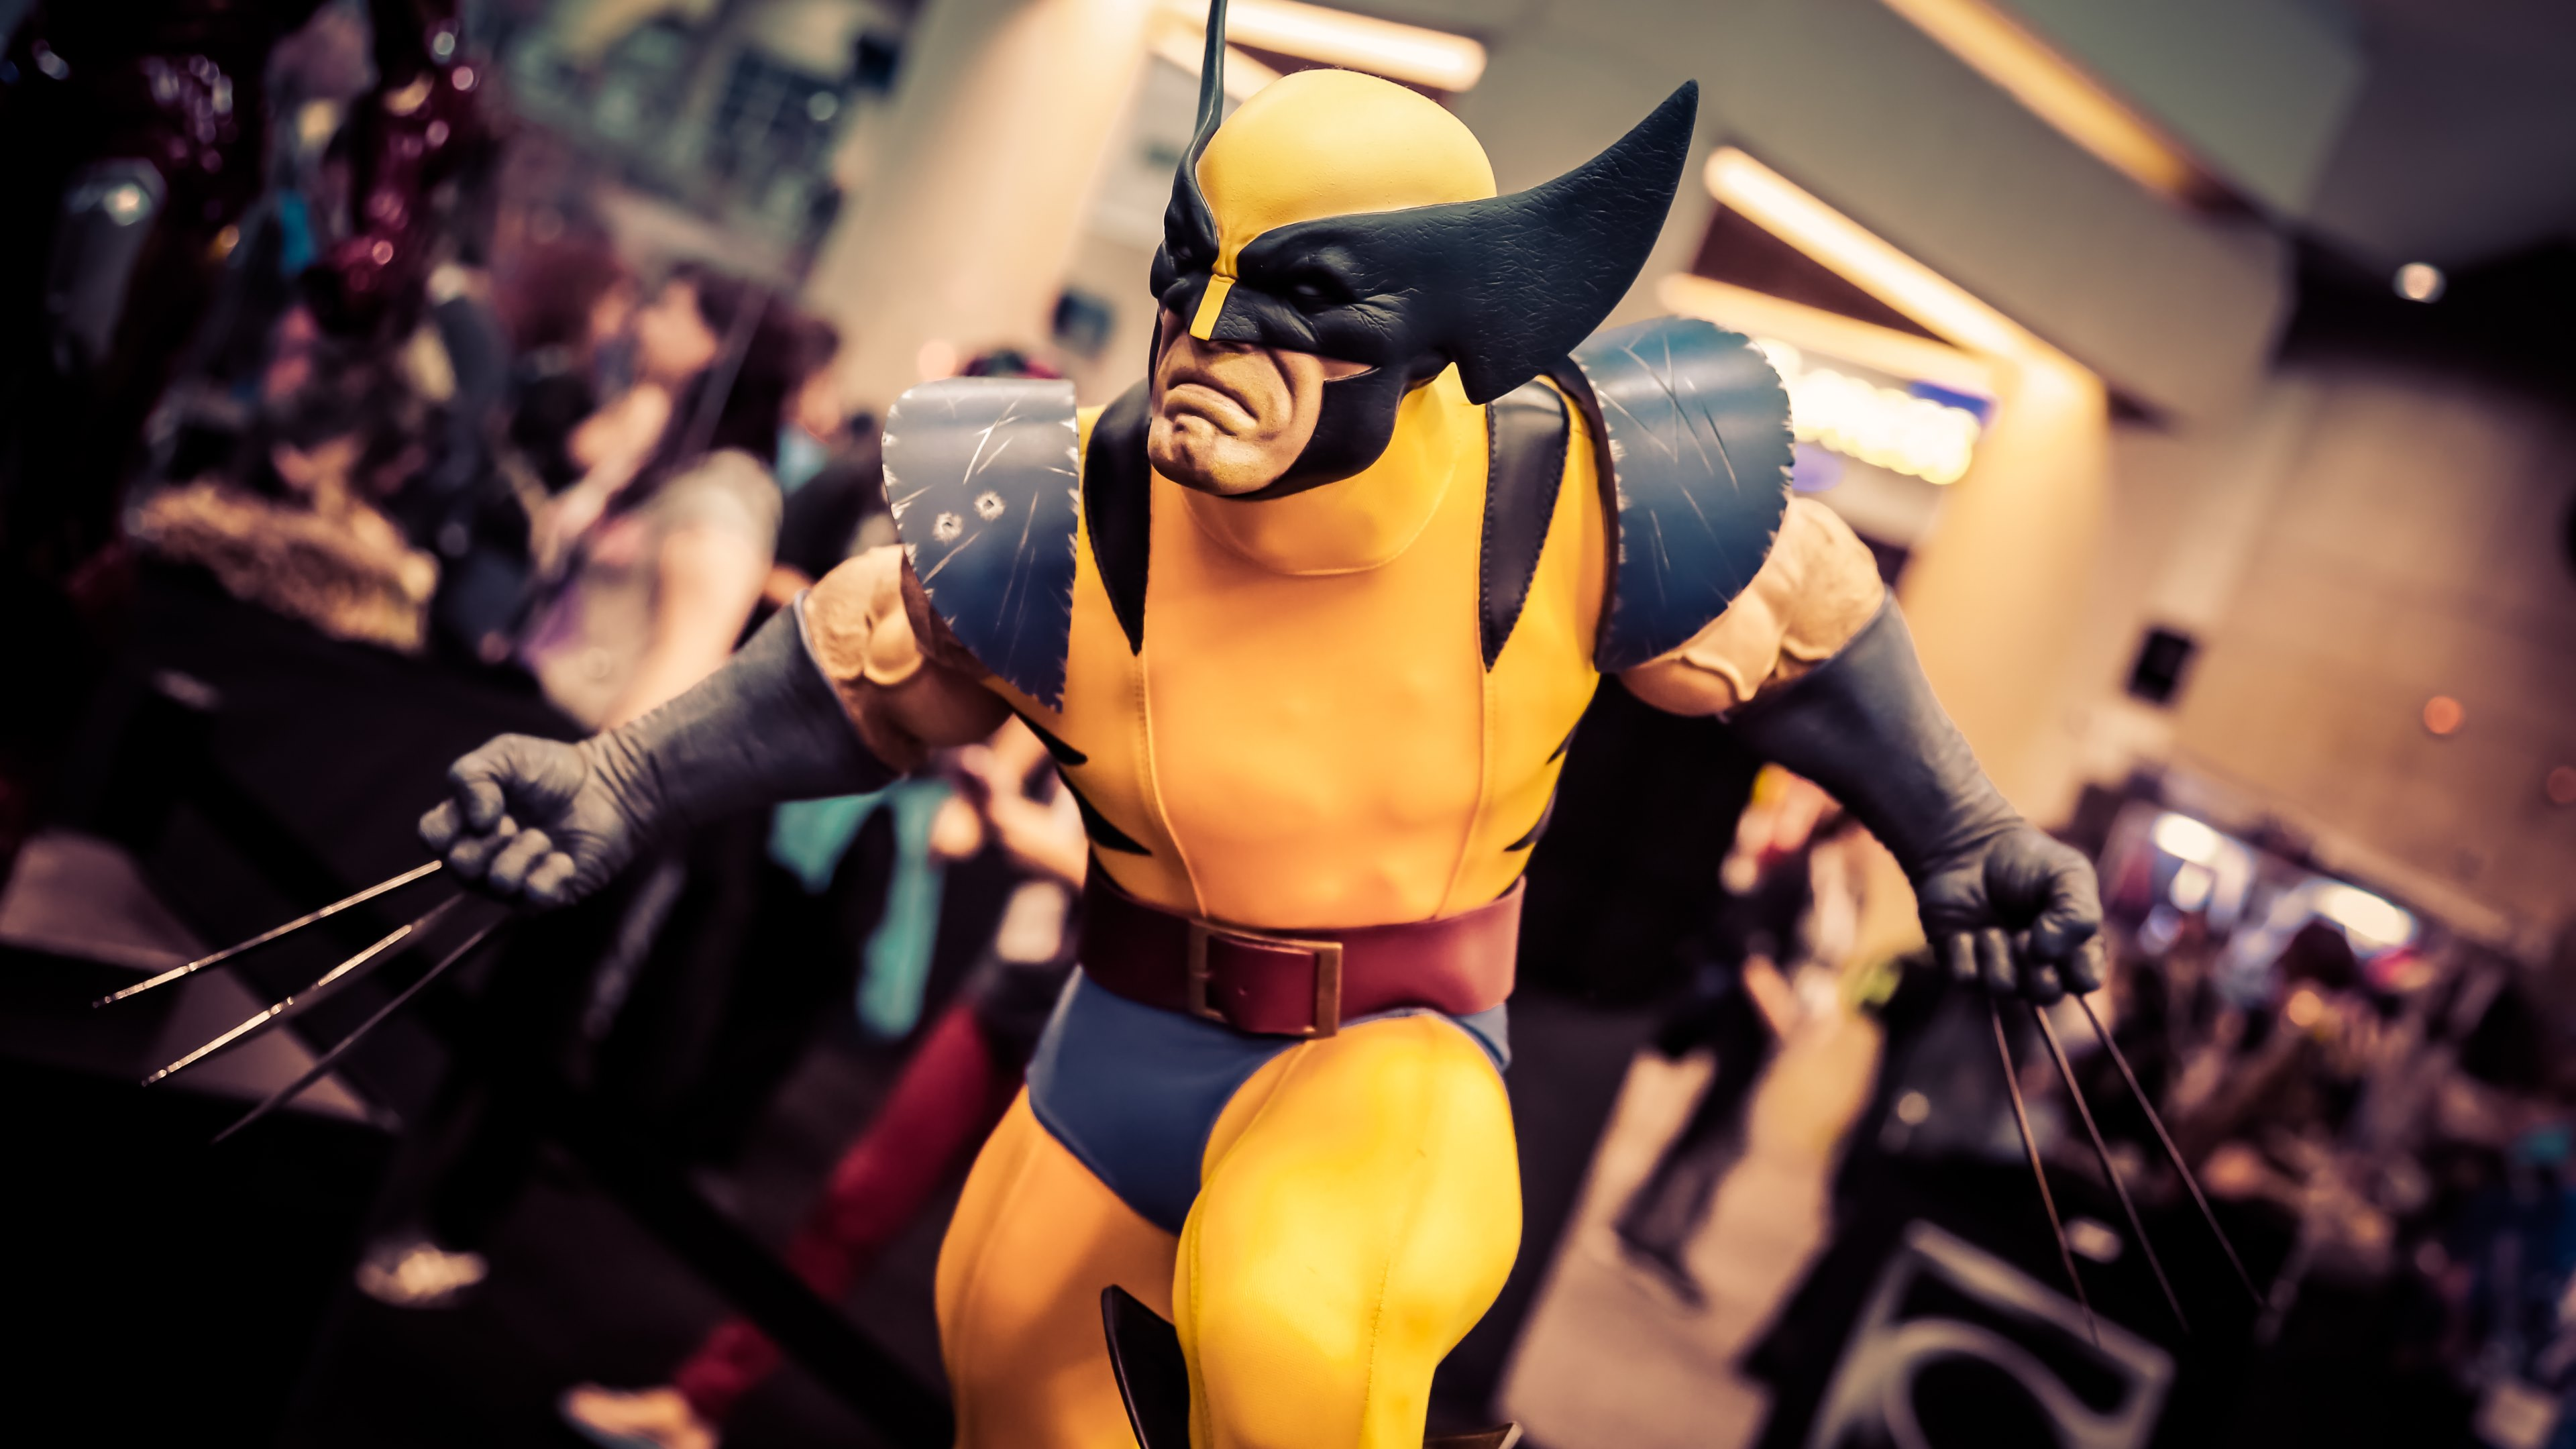 Wolverine Hd Wallpapers P Images Pic Mch0117127 Dzbc Org